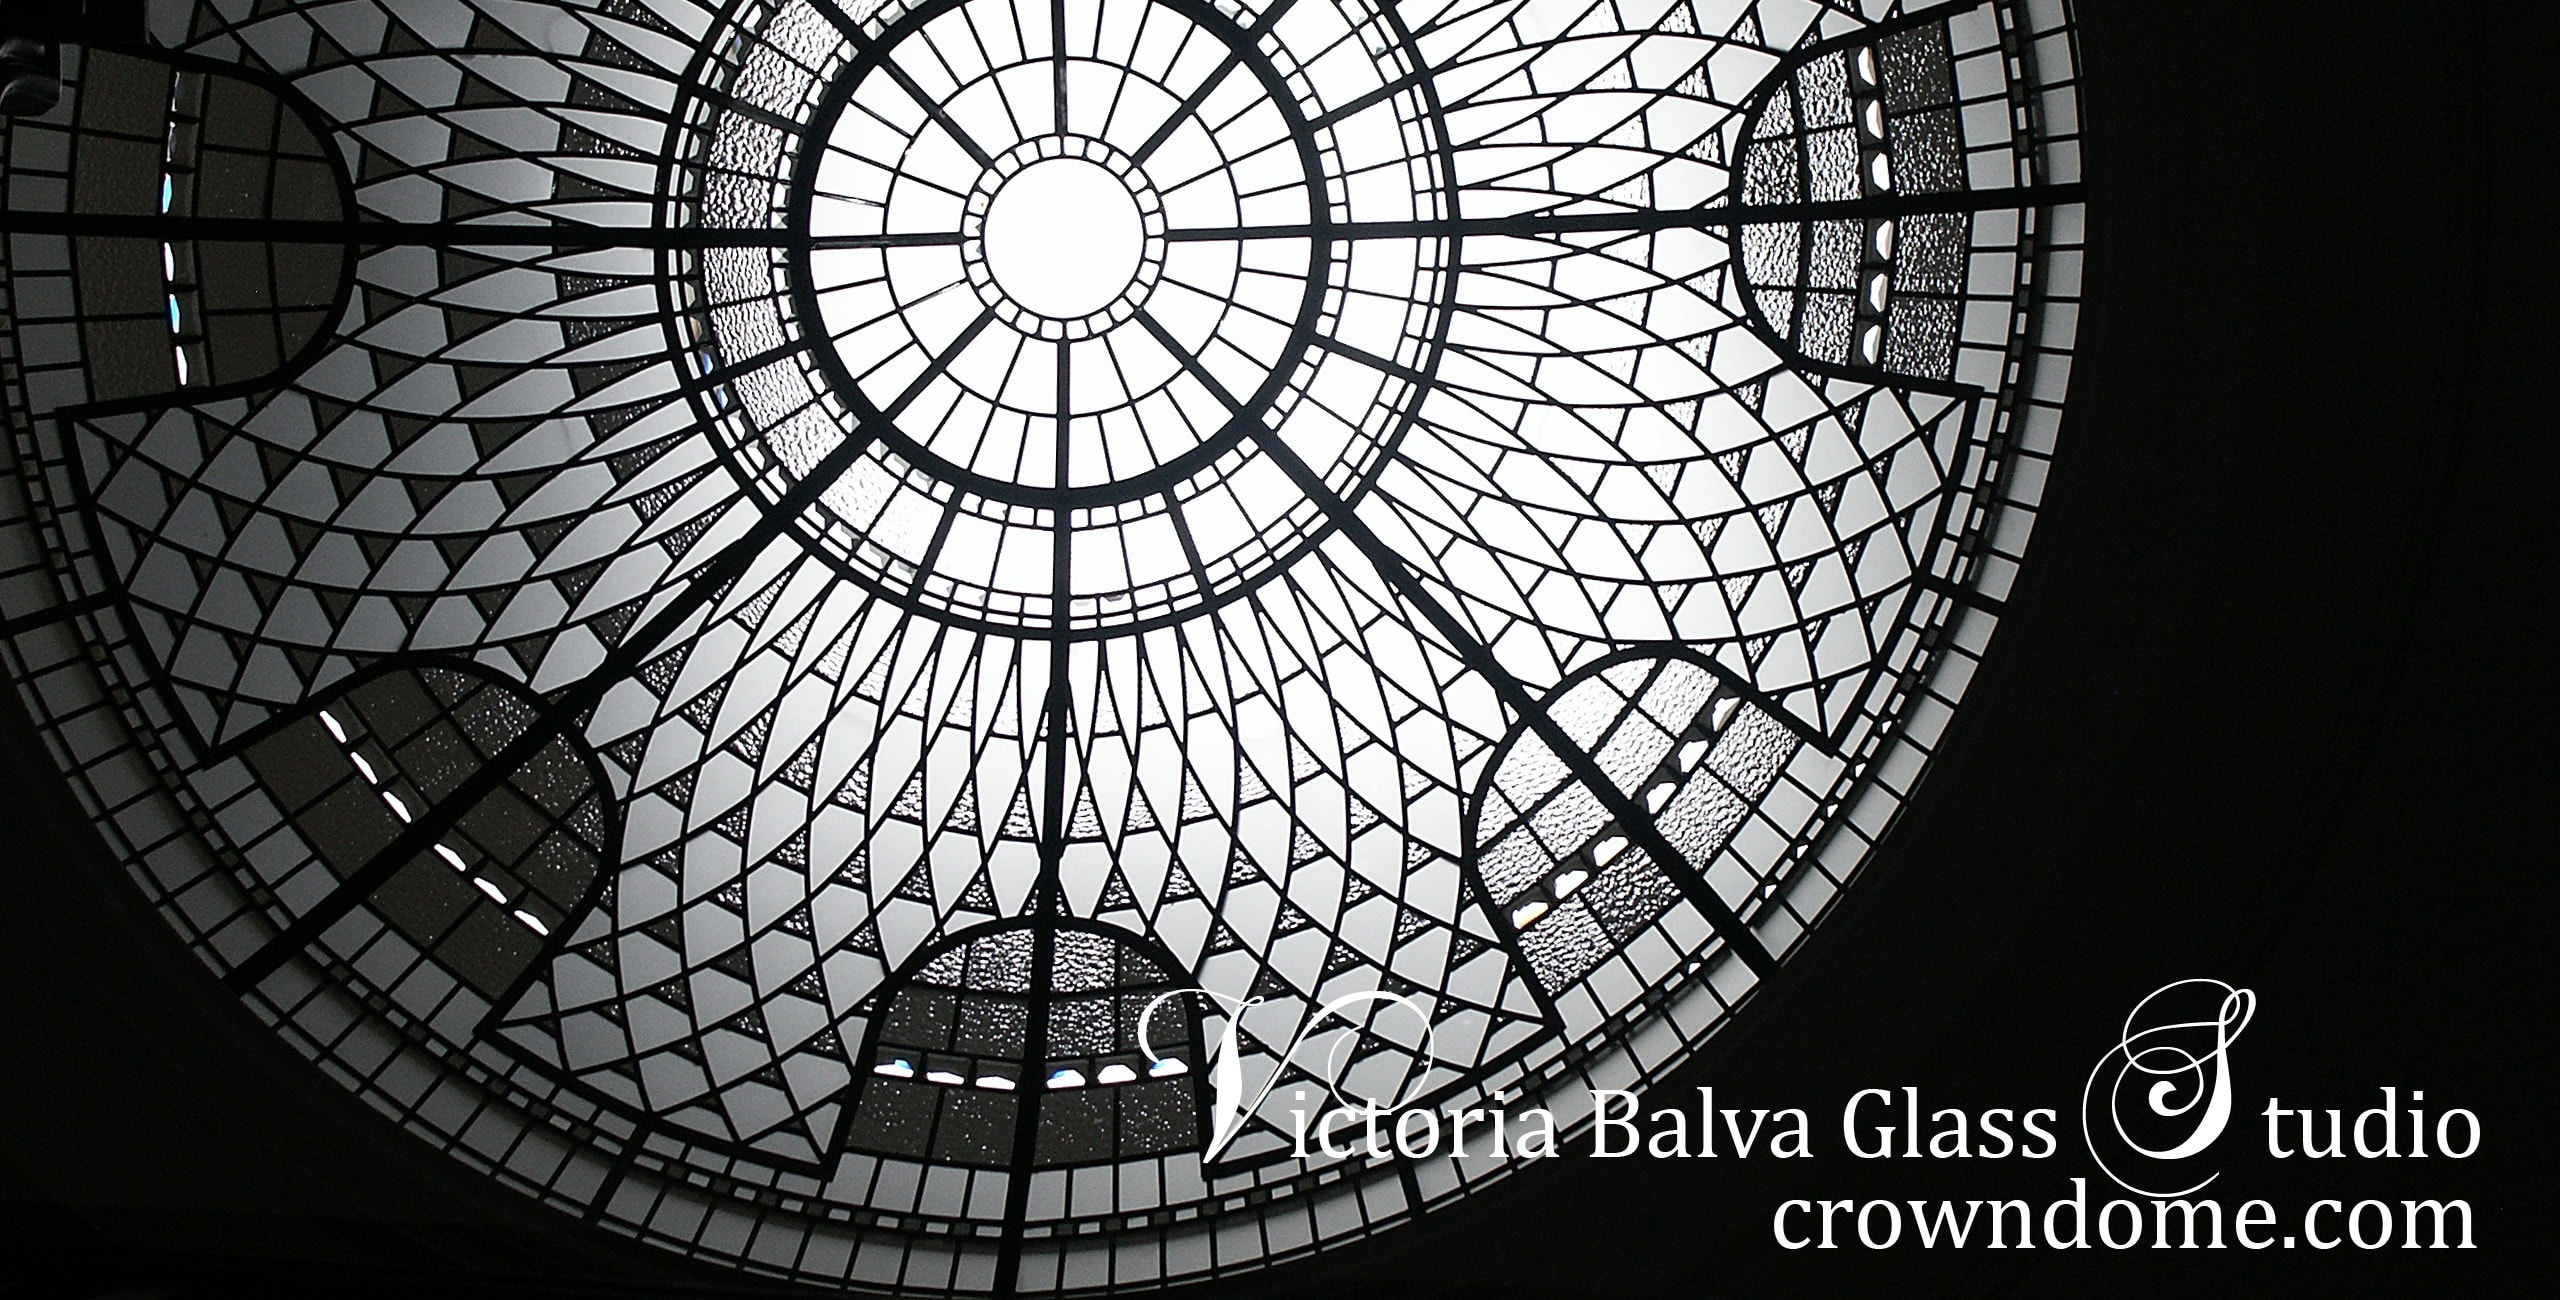 Leaded glass dome skylight custom made for the entrance hall of luxury custom built home in Toronto. Large glass dome ceiling with clear textured glass, crystal jewel, beveled glass lay light designed by architectural glass artist Victoria Balva